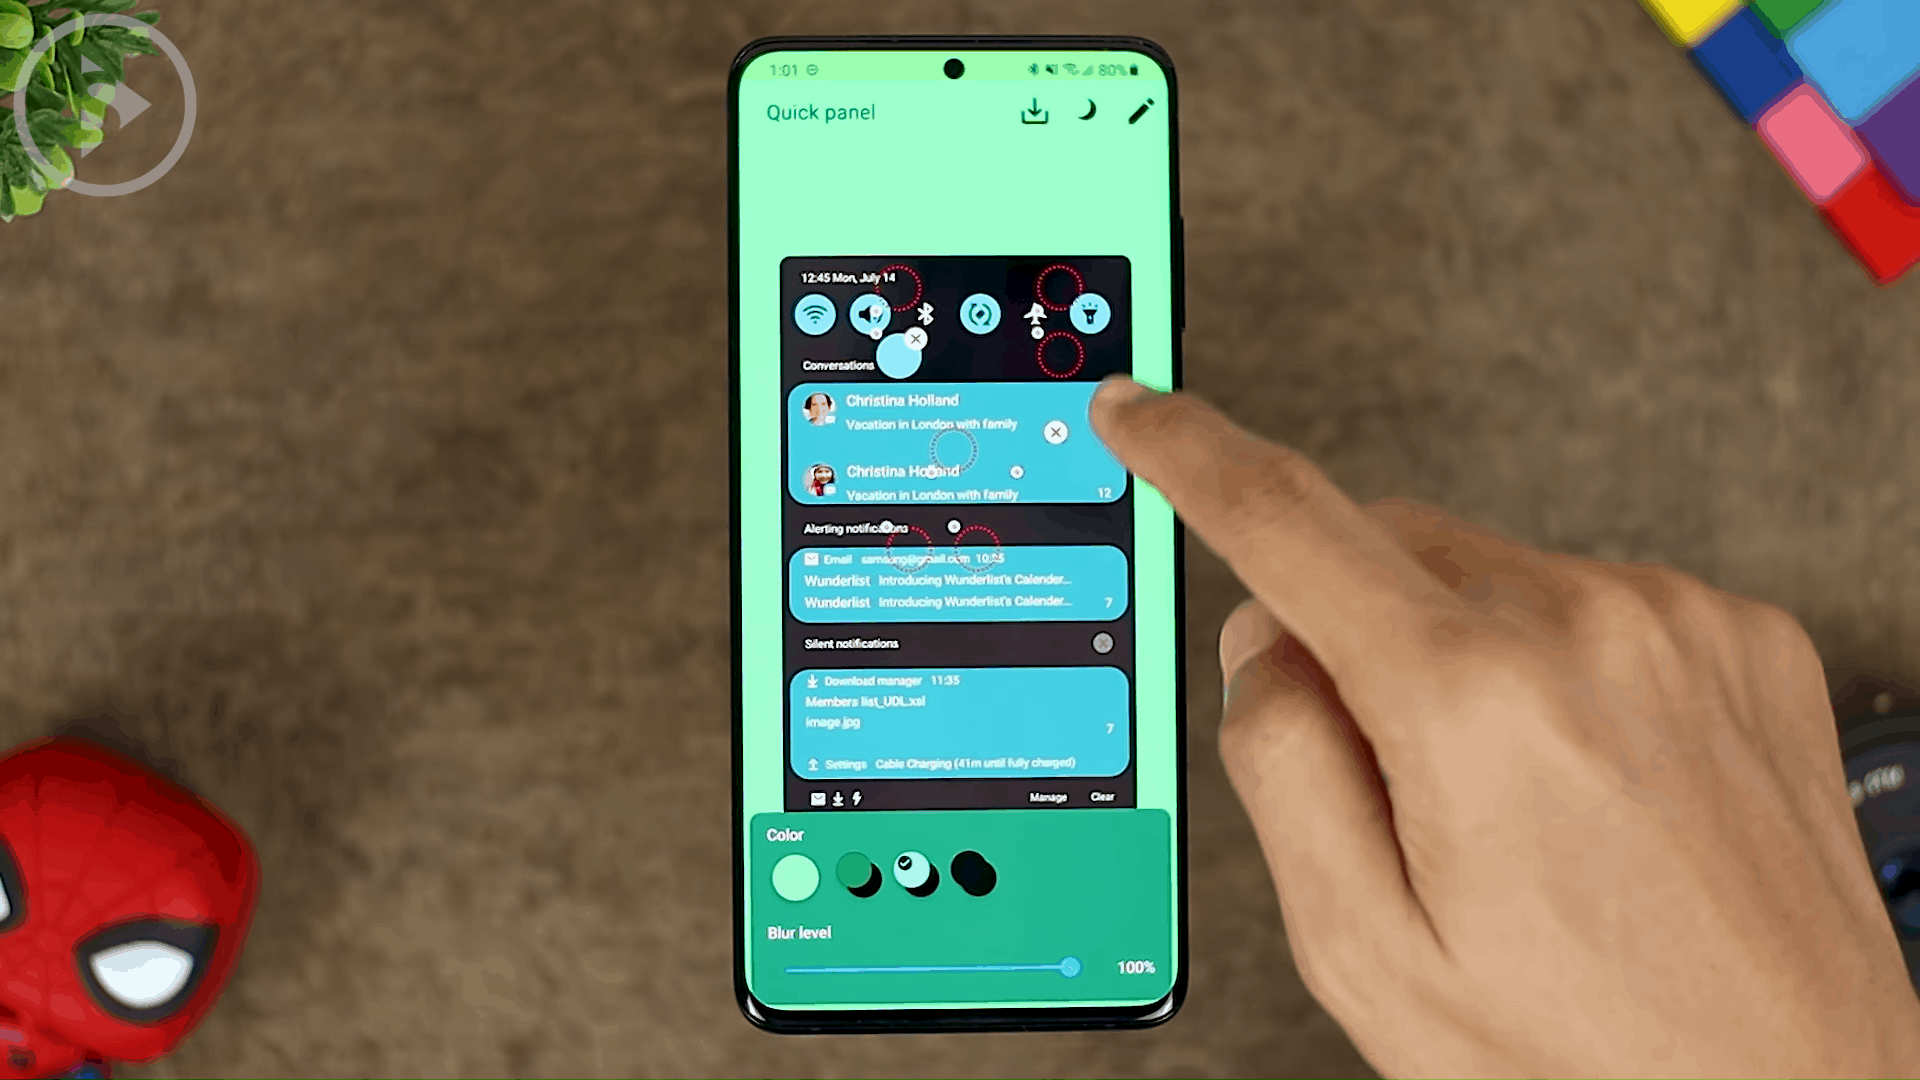 GoodLock App - Complete Tips on How to Install the GoodLock in 2021